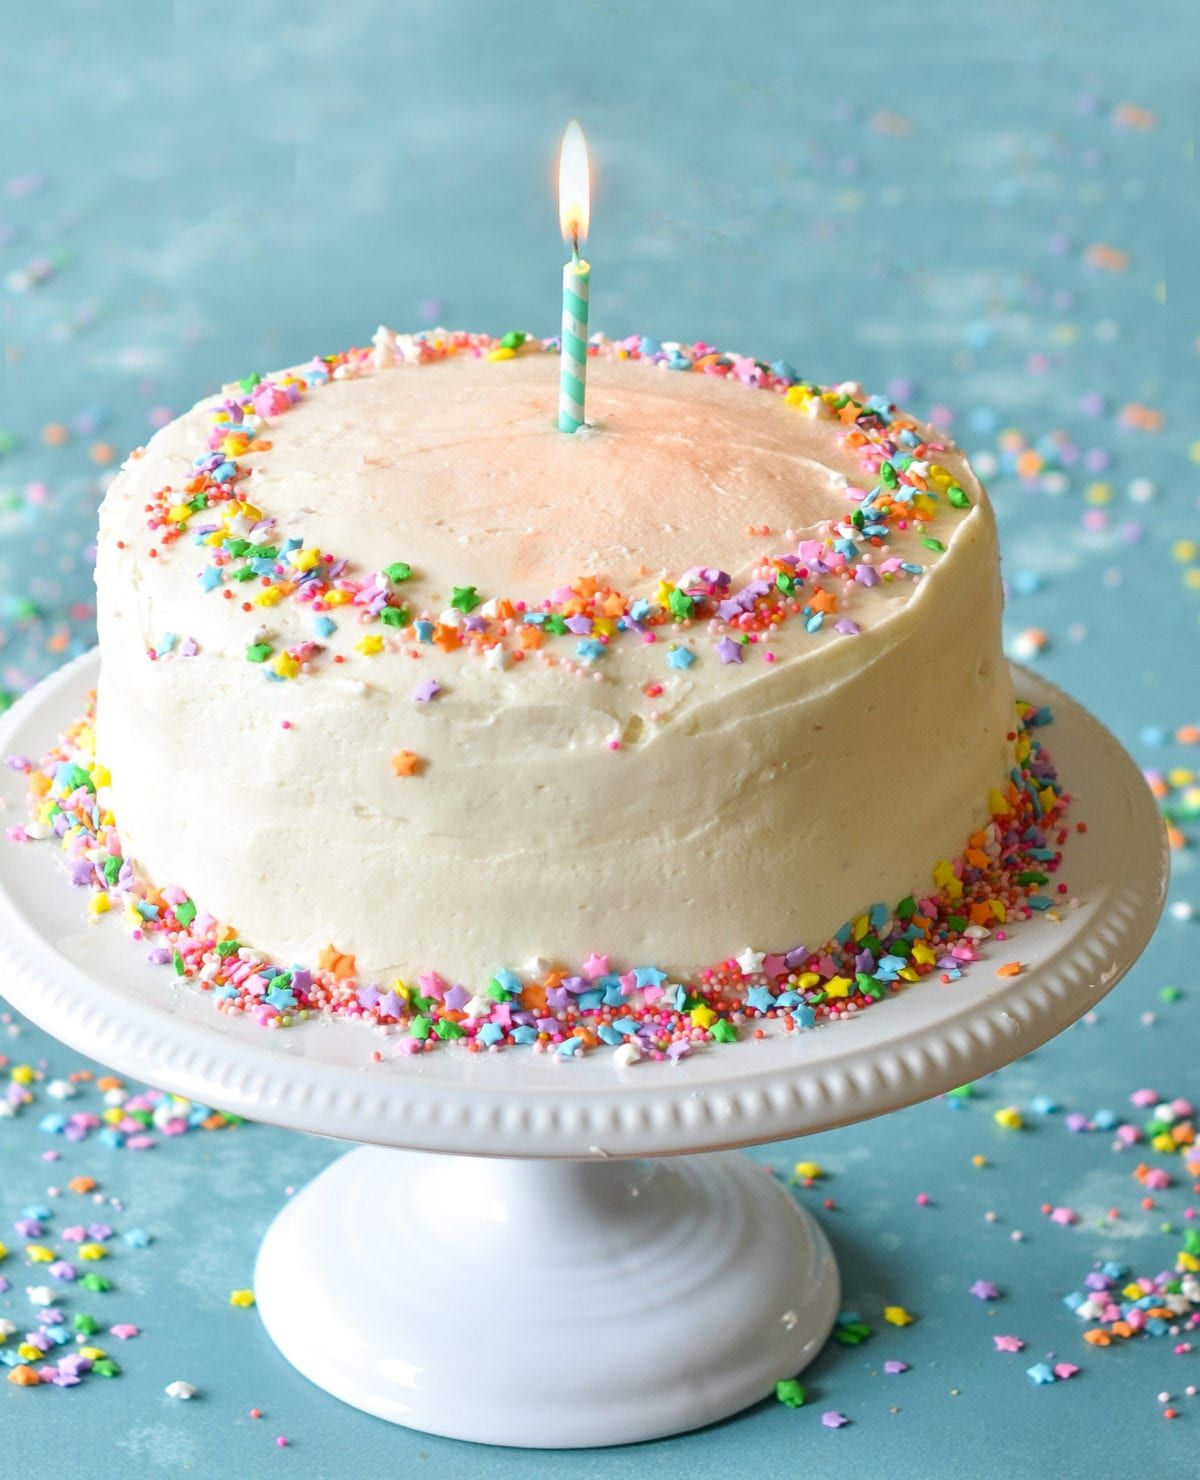 TESTED PERFECTED RECIPE This Moist Delicious Birthday Cake Recipe Is Adapted From One Of My Favorite Baking Books Perfect Cakes By Nick Malgieri